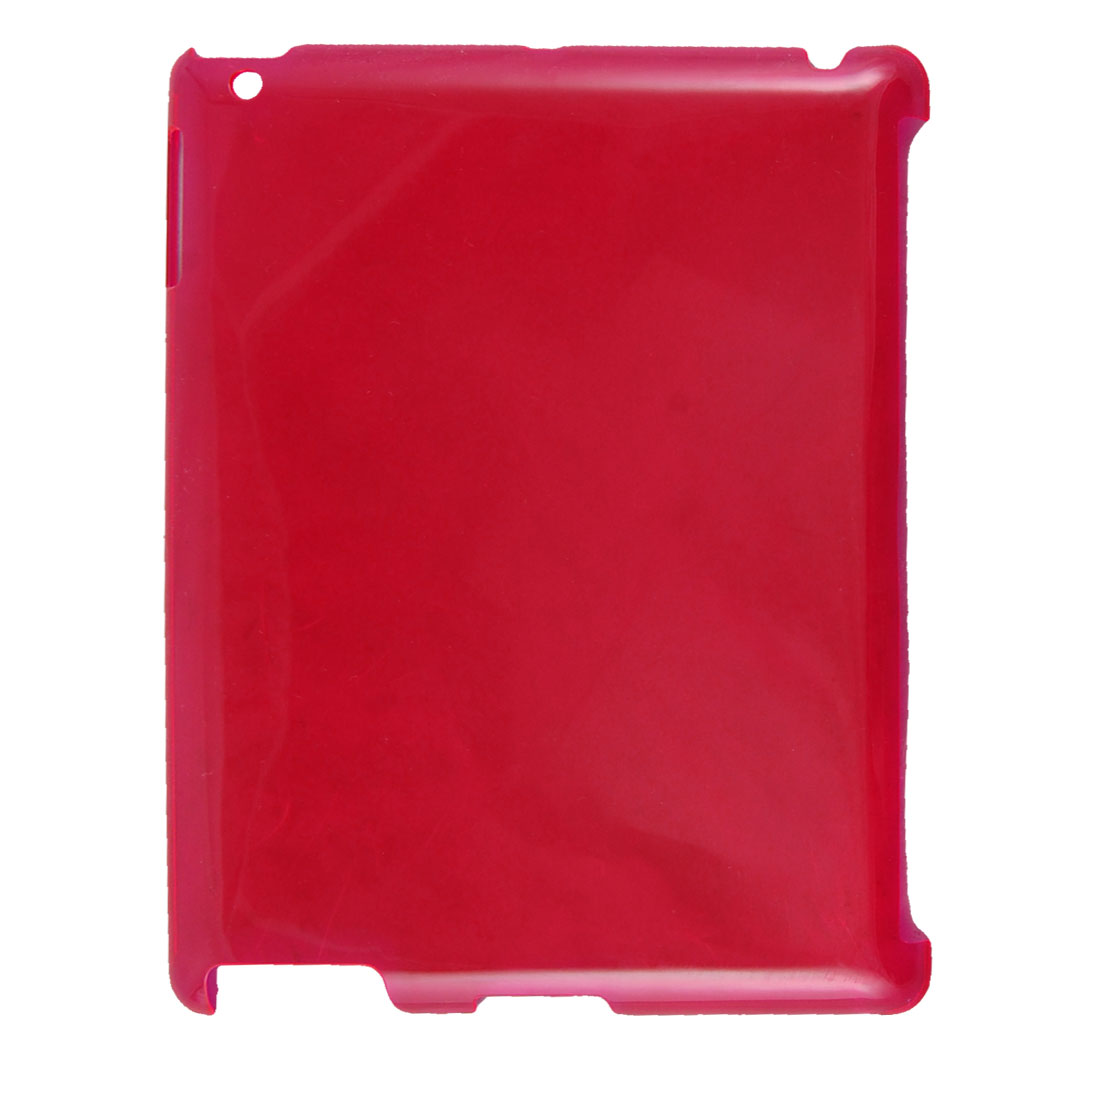 Red Plastic Back Cover Case Protector for iPad 2